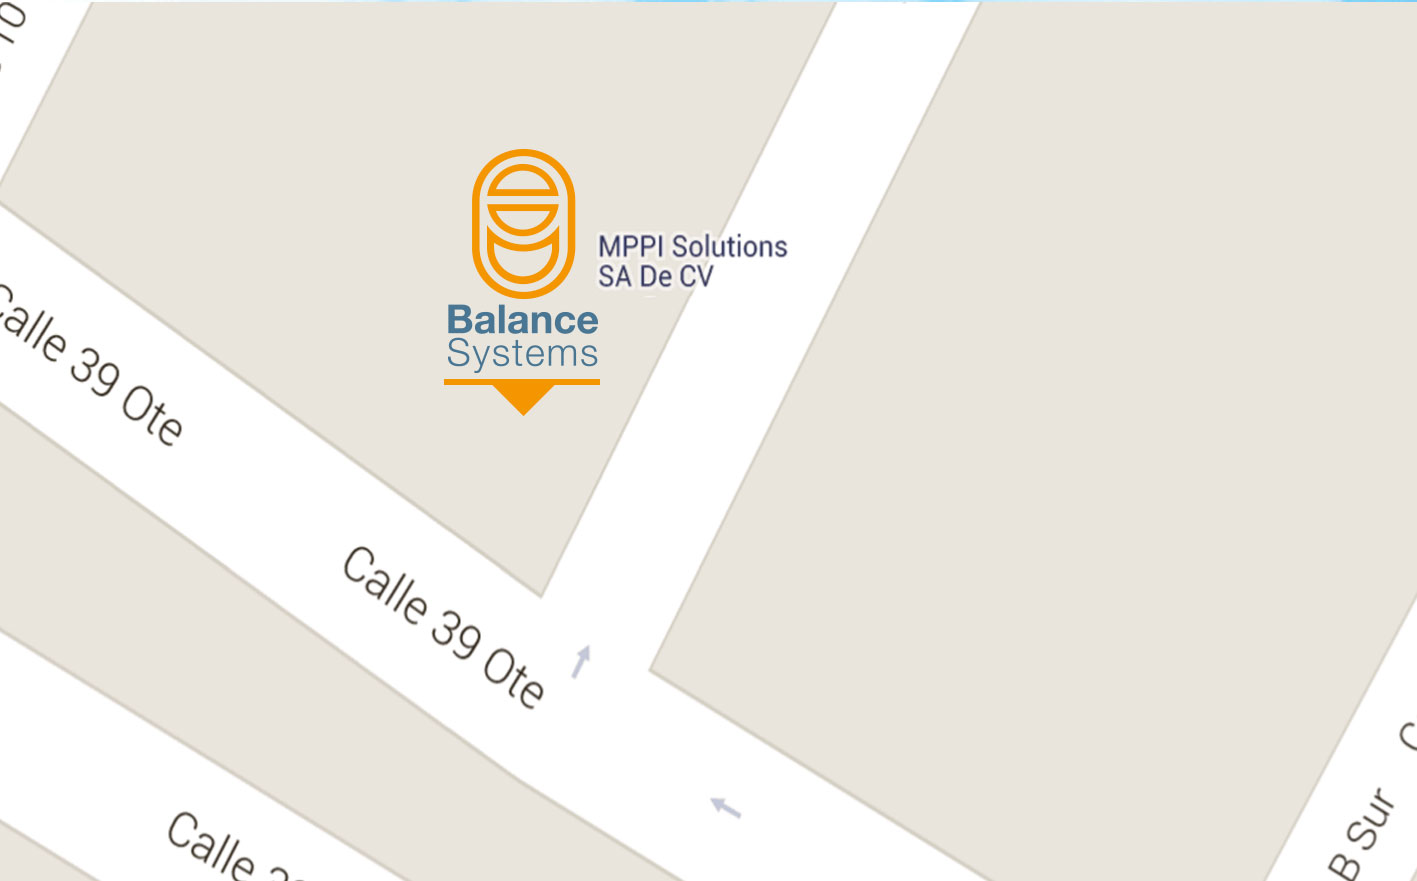 New Mexican distributor for Balance Systems